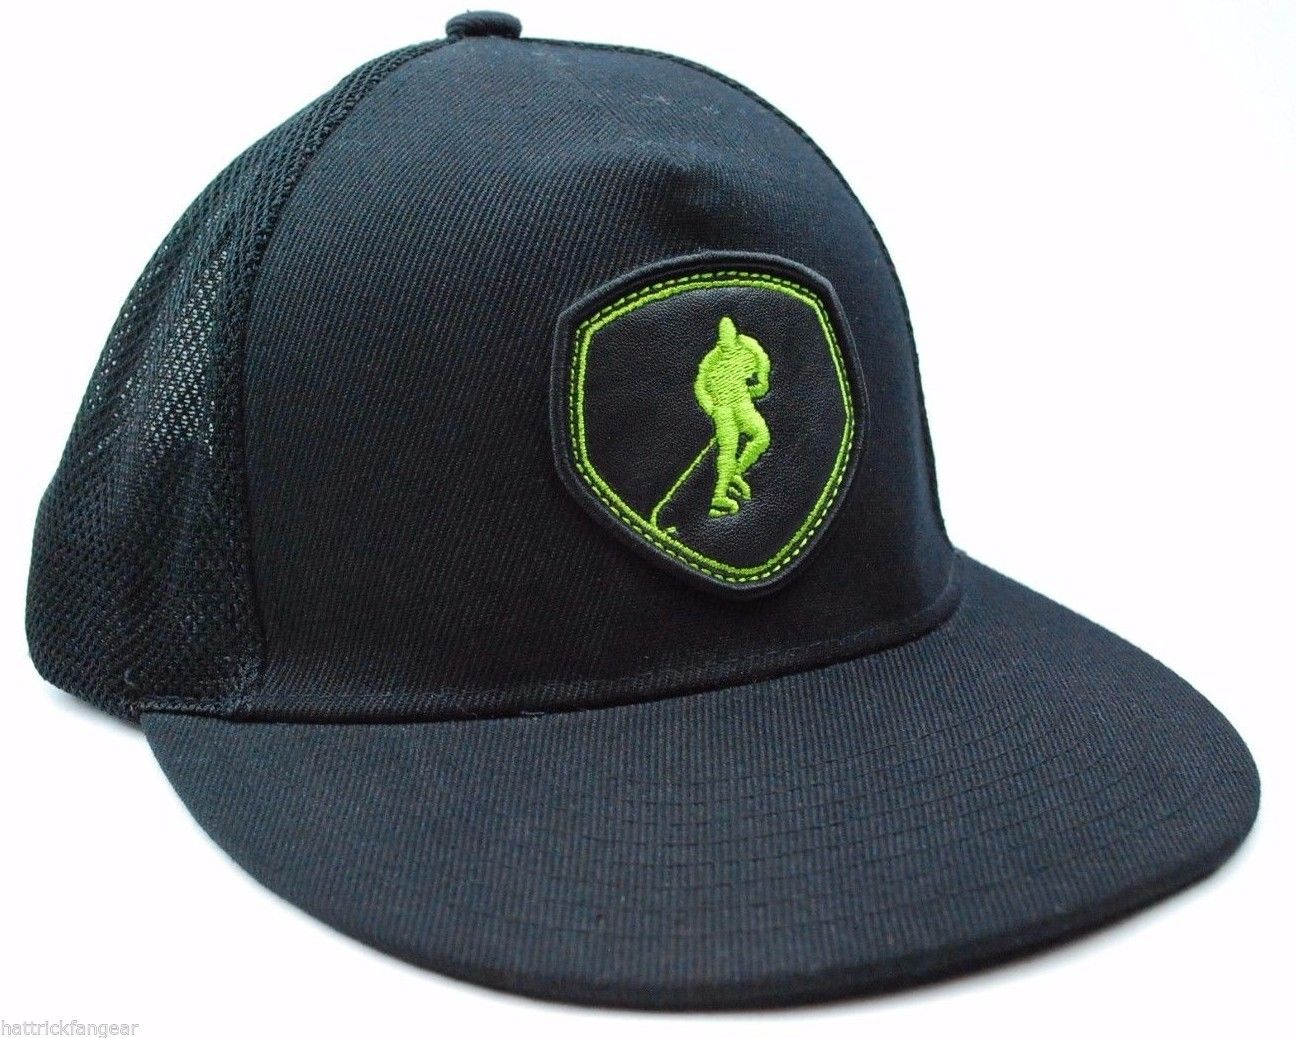 """GONGSHOW LIFESTYLE HOCKEY APPAREL """"CELLY ALL THE TIME"""" SNAPBACK HOCKEY CAP/HAT"""